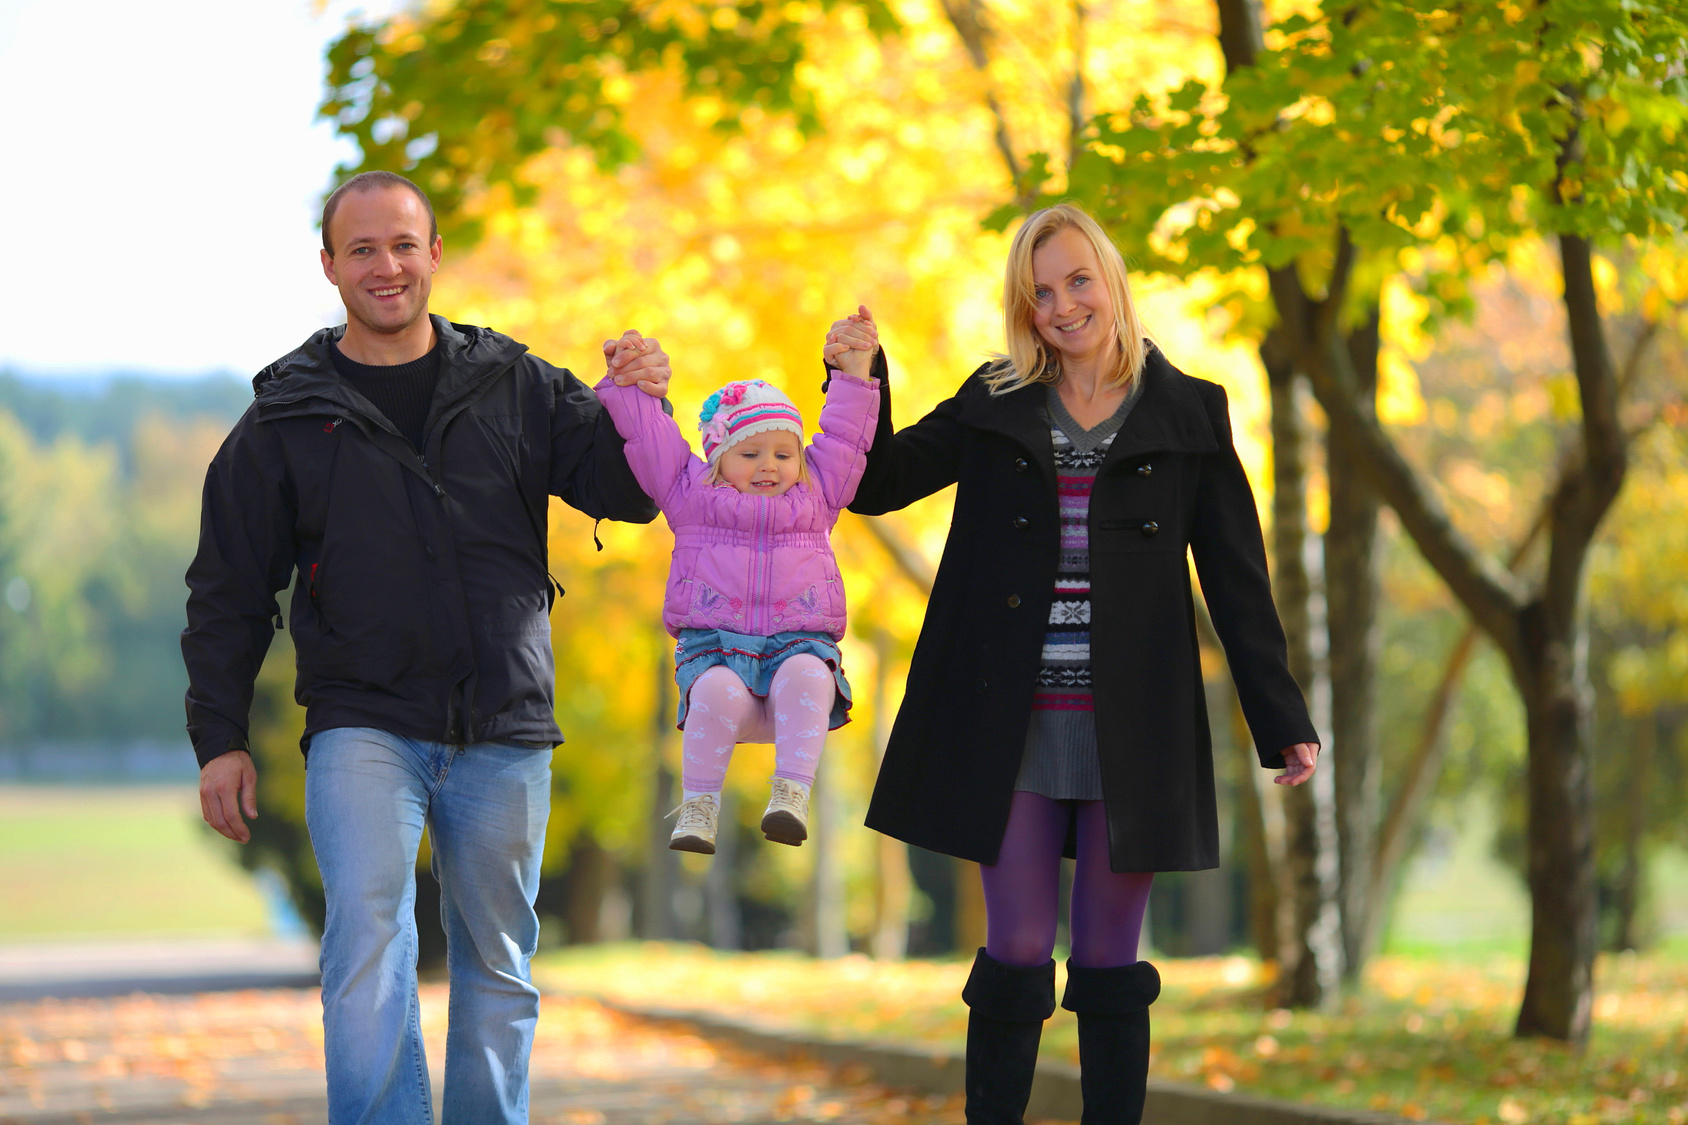 Don Hoffer Insurance - Life Insurance for Individuals and Families in St. Louis Park, MN